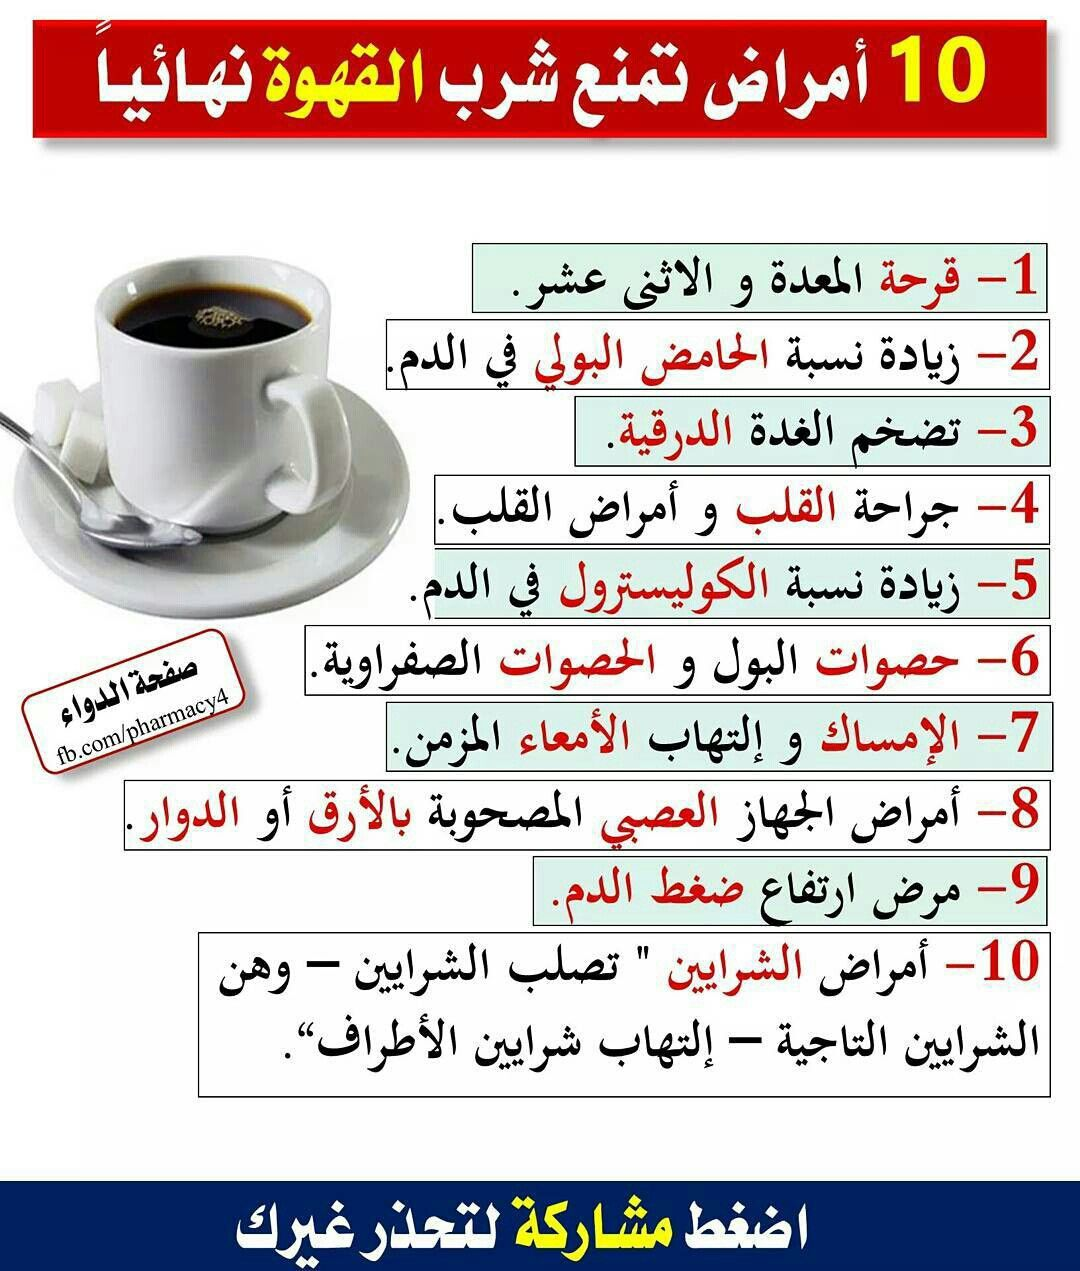 Pin By Nesma Ziyad On معلومات How To Stay Healthy Health Healthy Nutrition